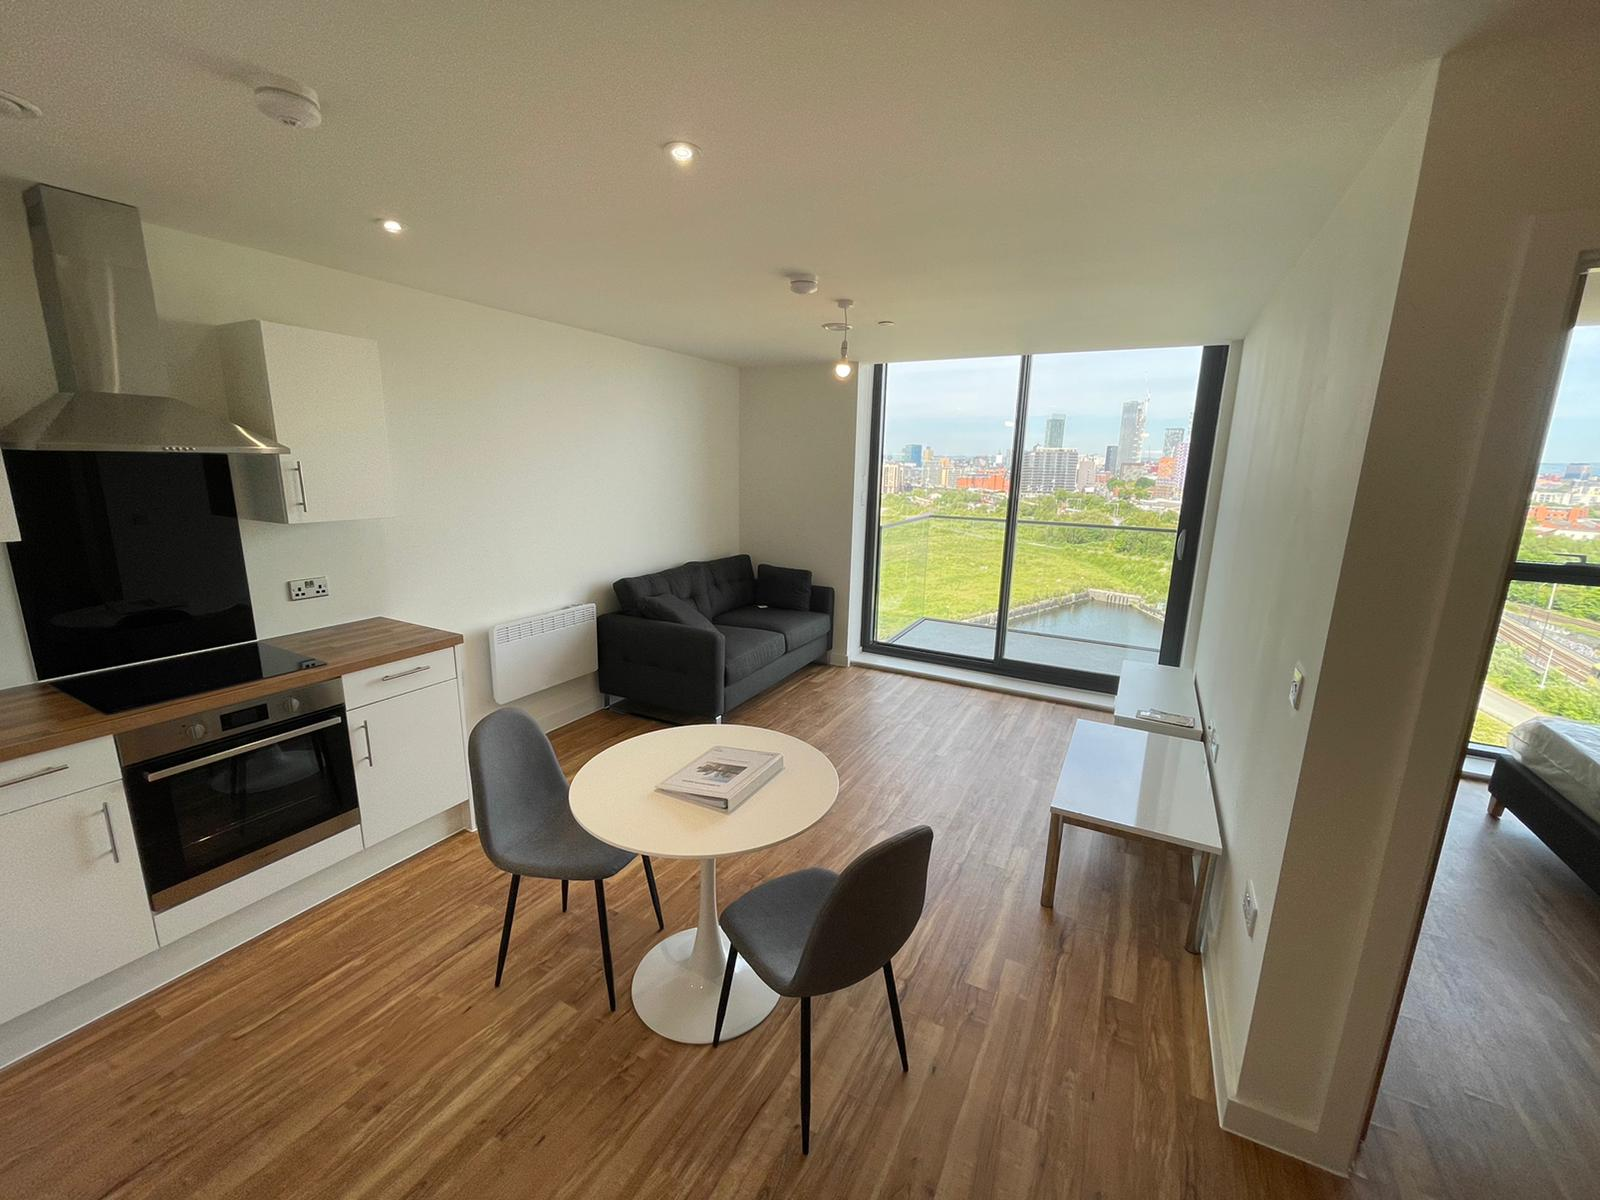 Stunning One Bedroom Apartment For Rent At X1 Manchester Waters M16